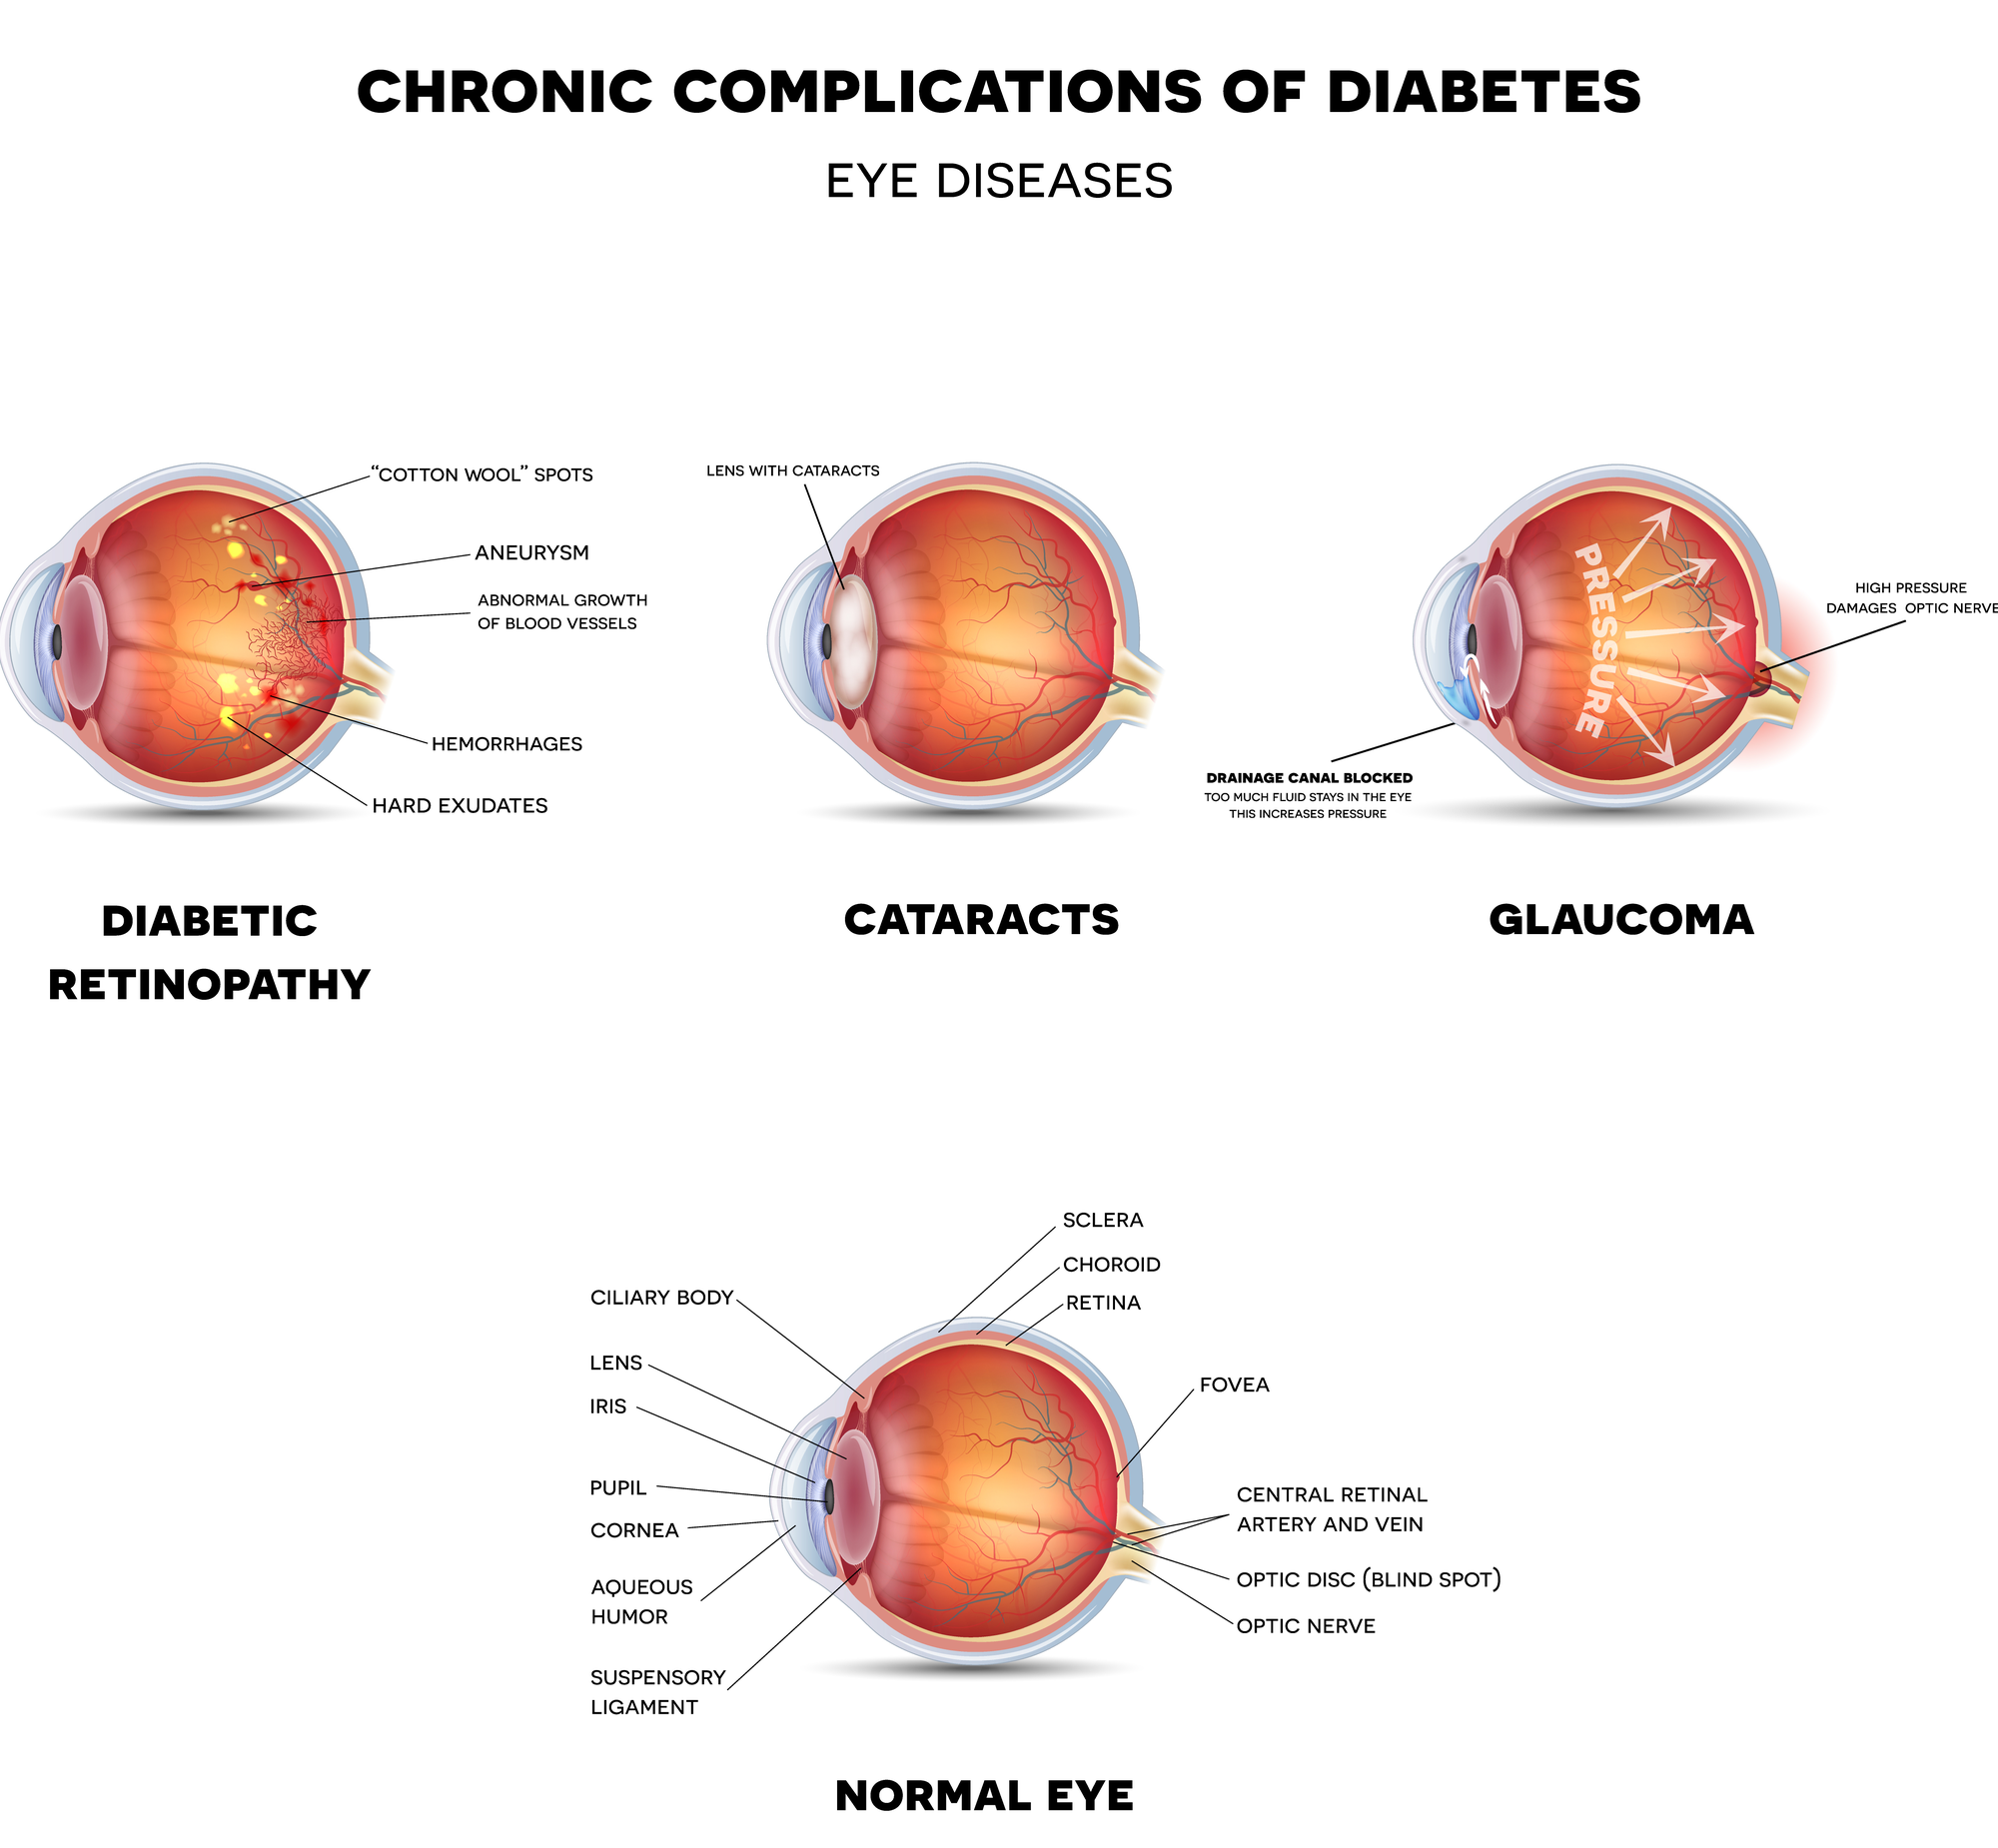 Diagnosing and Care for Diabetic Eye Diseases